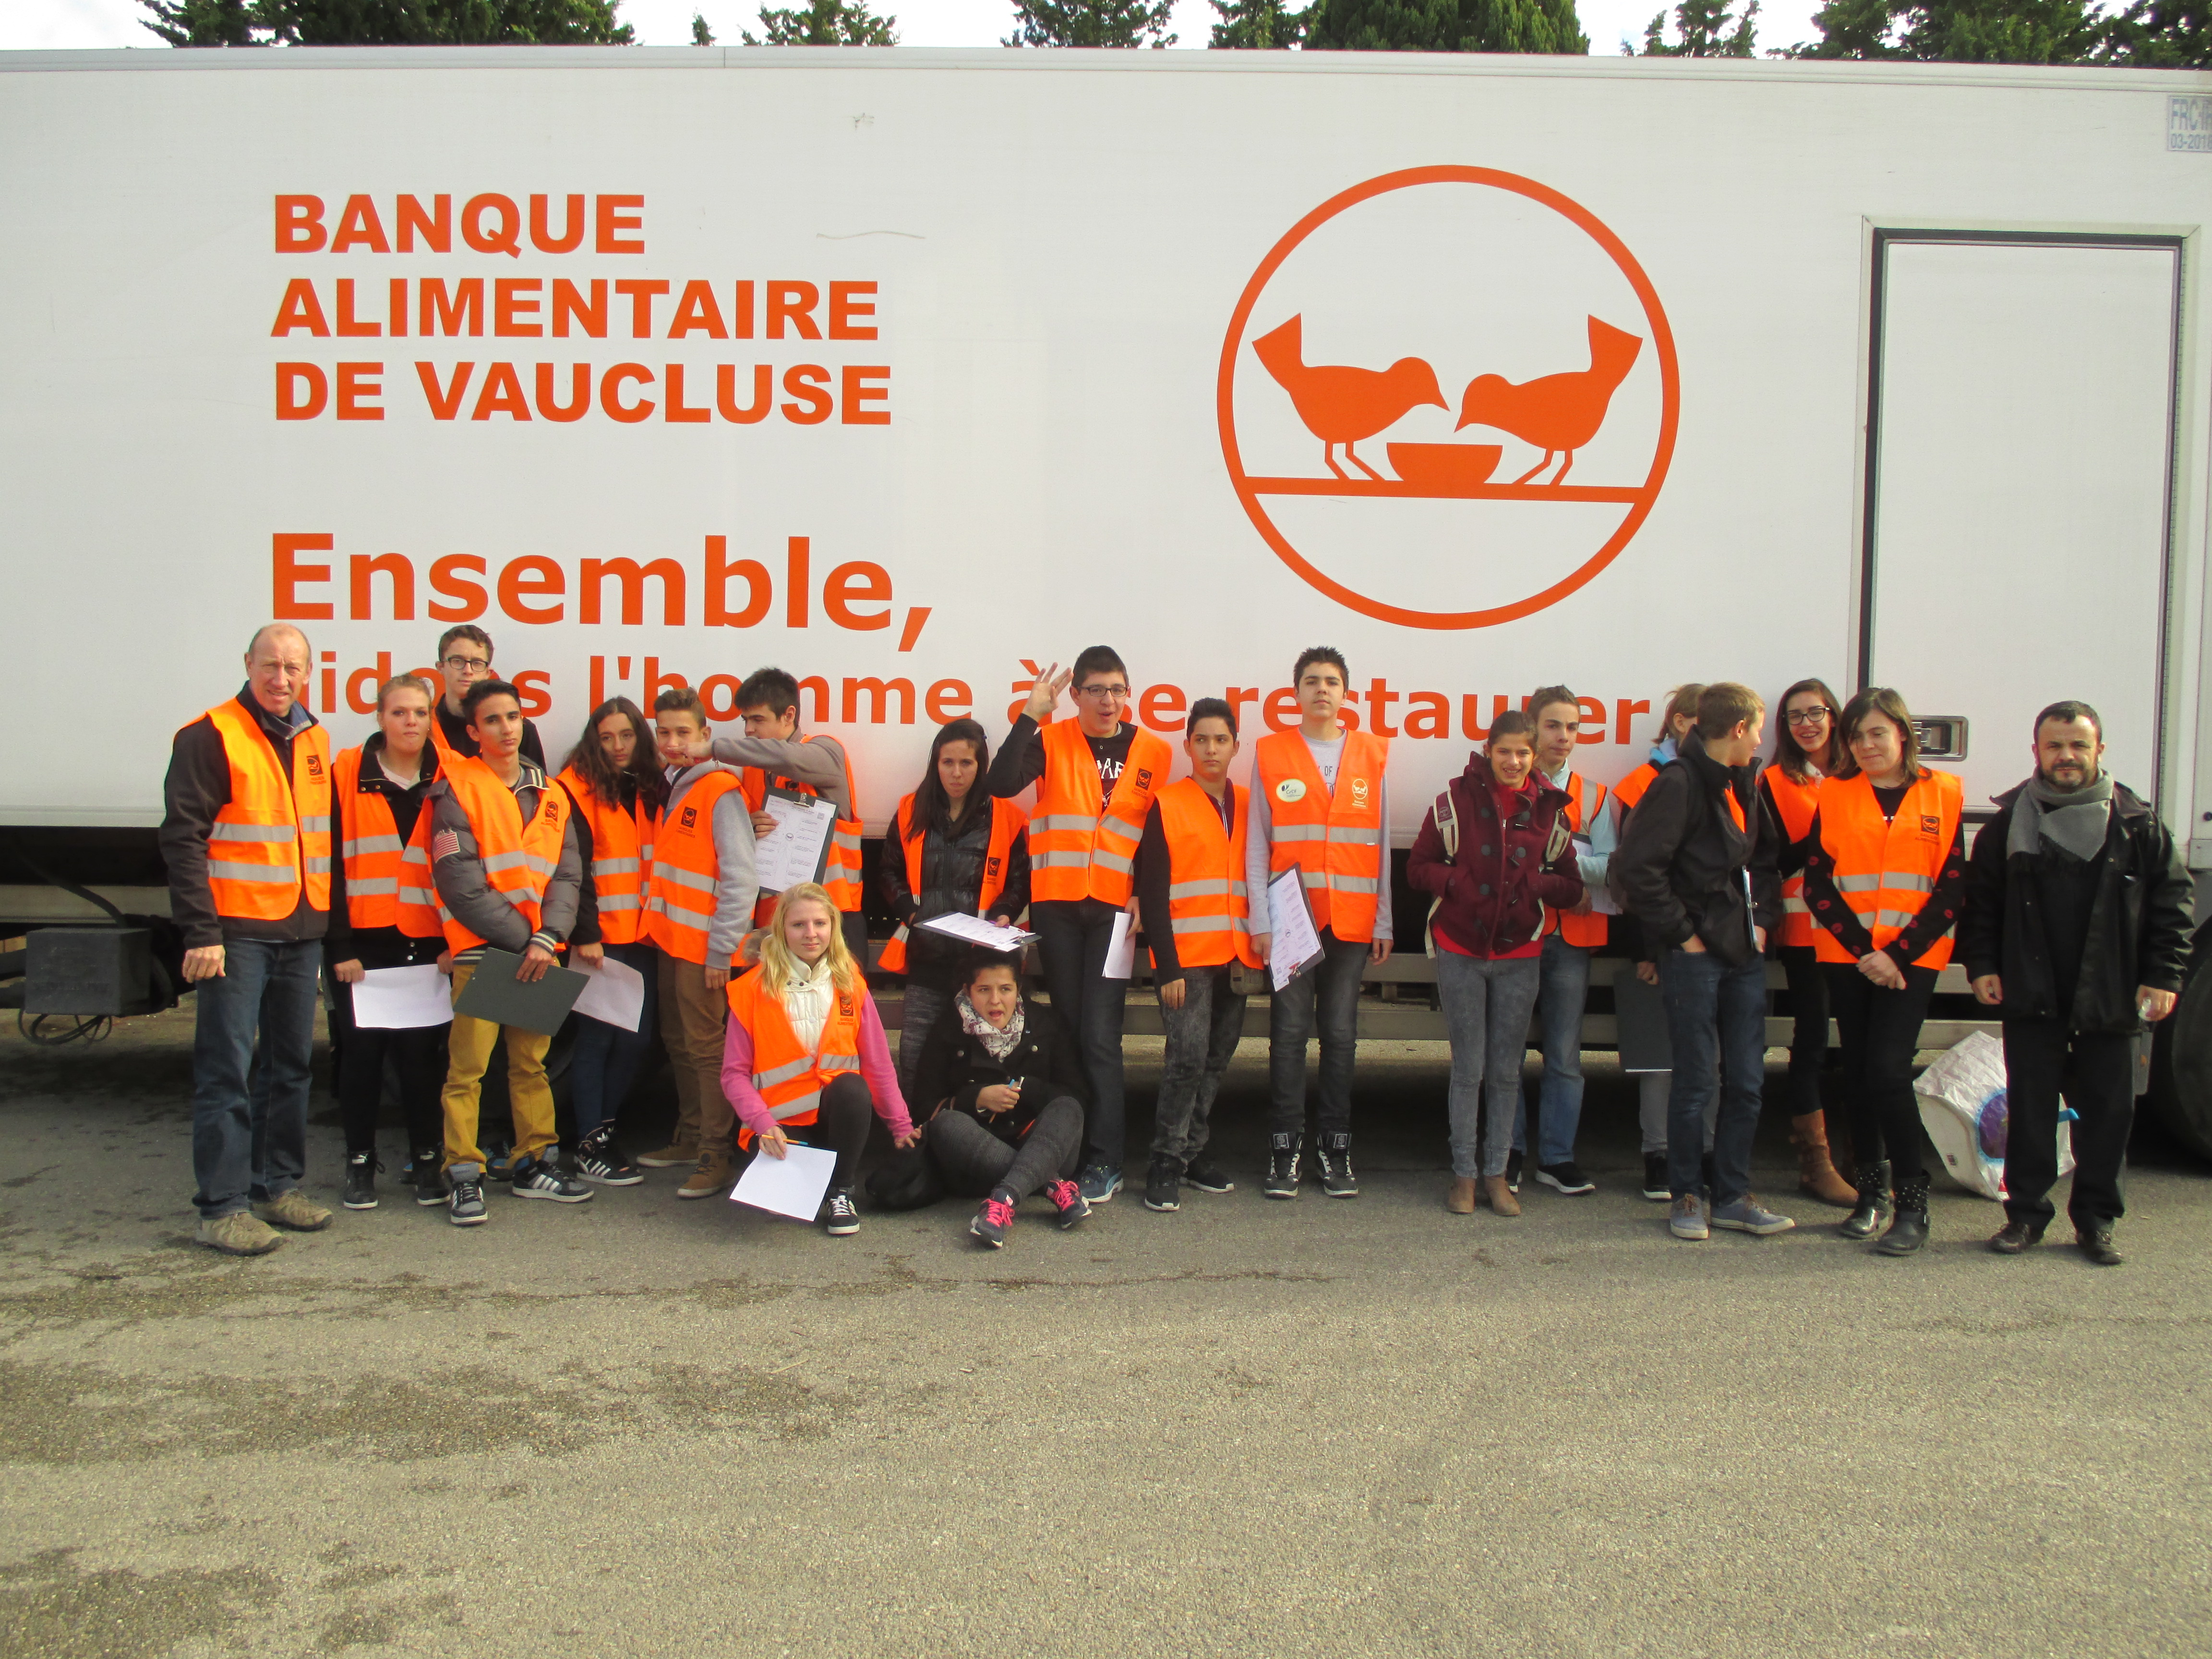 Banque Alimentaire 84